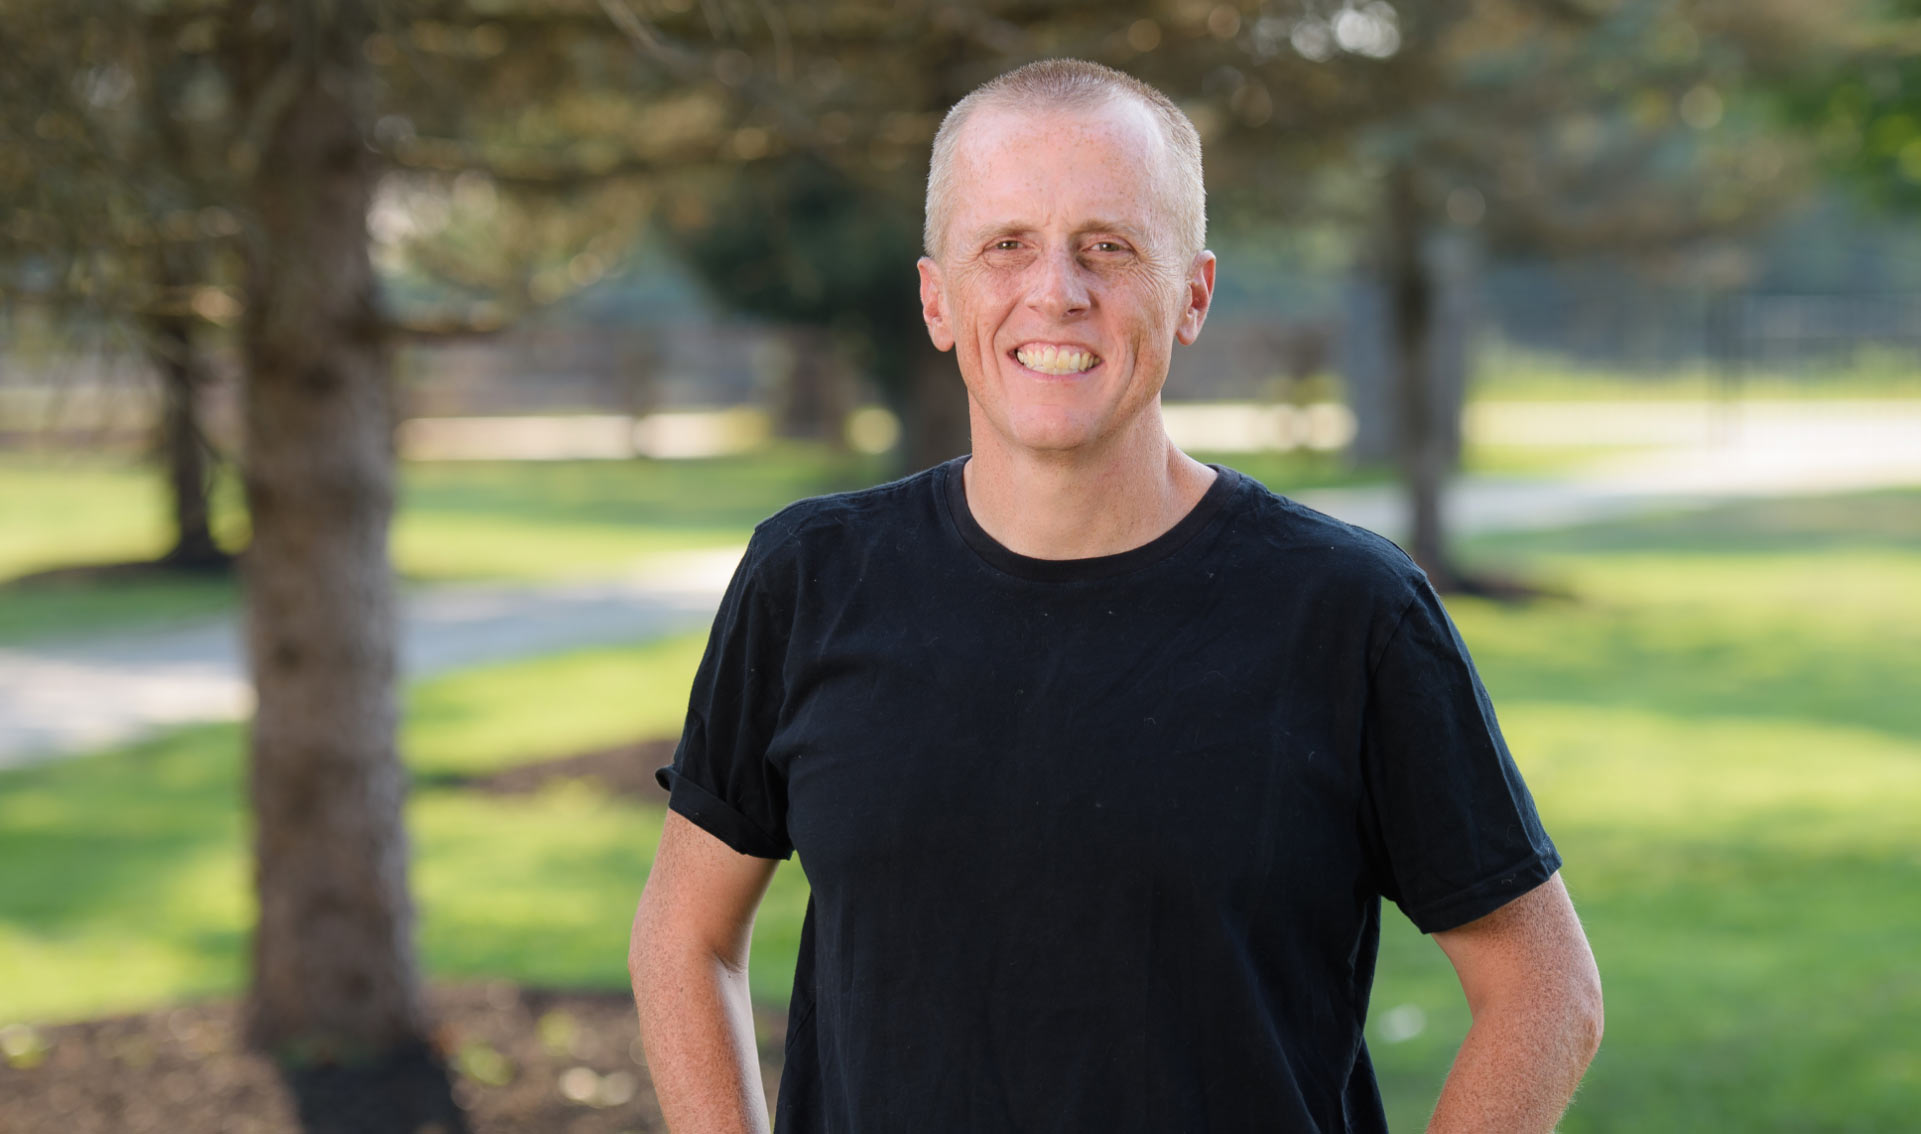 A portrait photo of Dr. Day smiling with greenery in the background. He is wearing a plain black t-shirt and is standing with his hands on his hips.